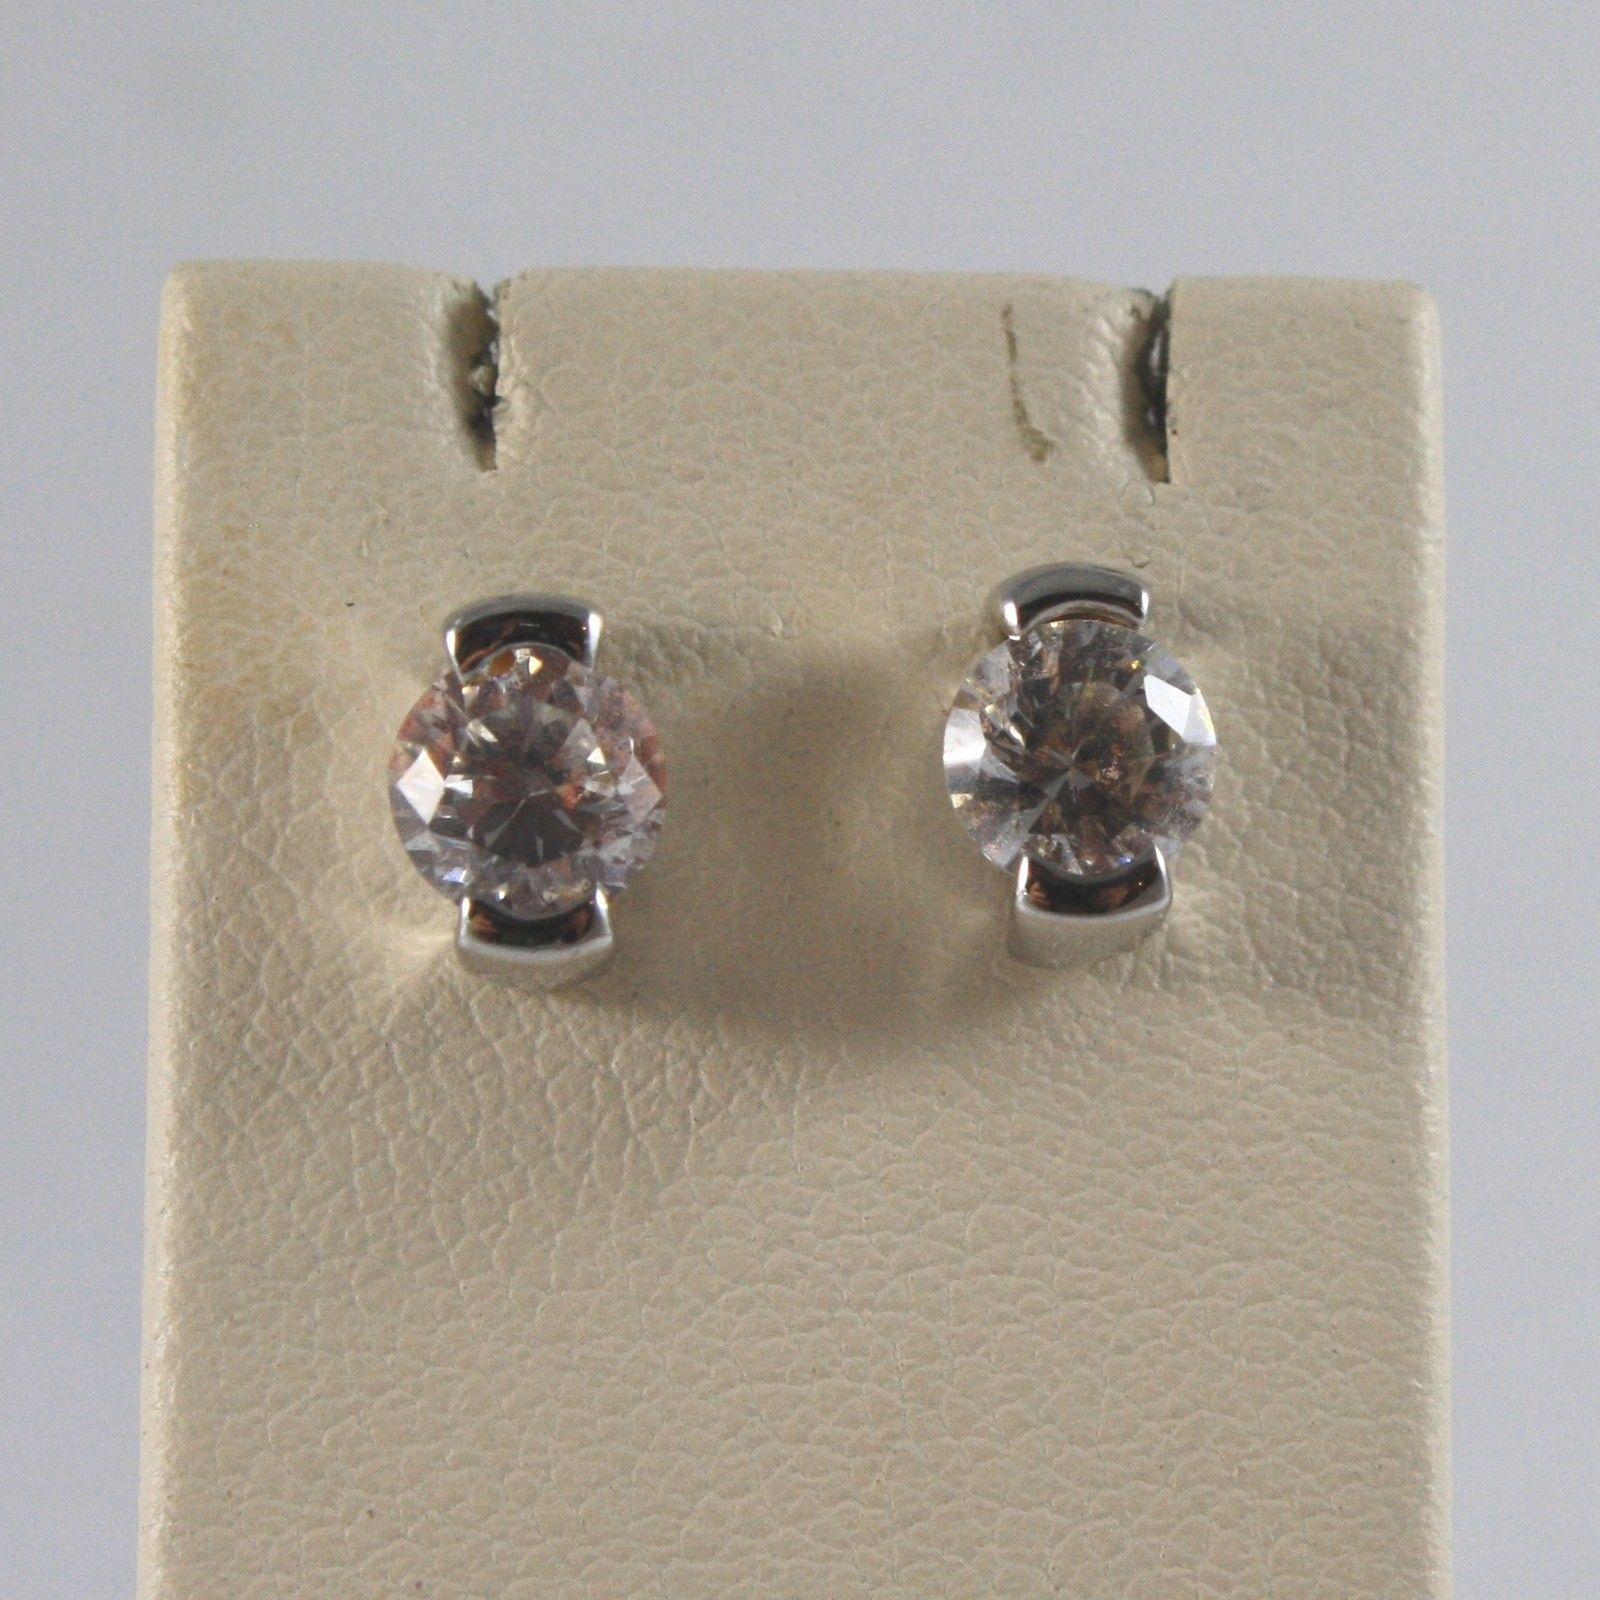 18K SOLID WHITE GOLD EARRINGS WITH CUBIC ZIRCONIA MADE IN ITALY 18K